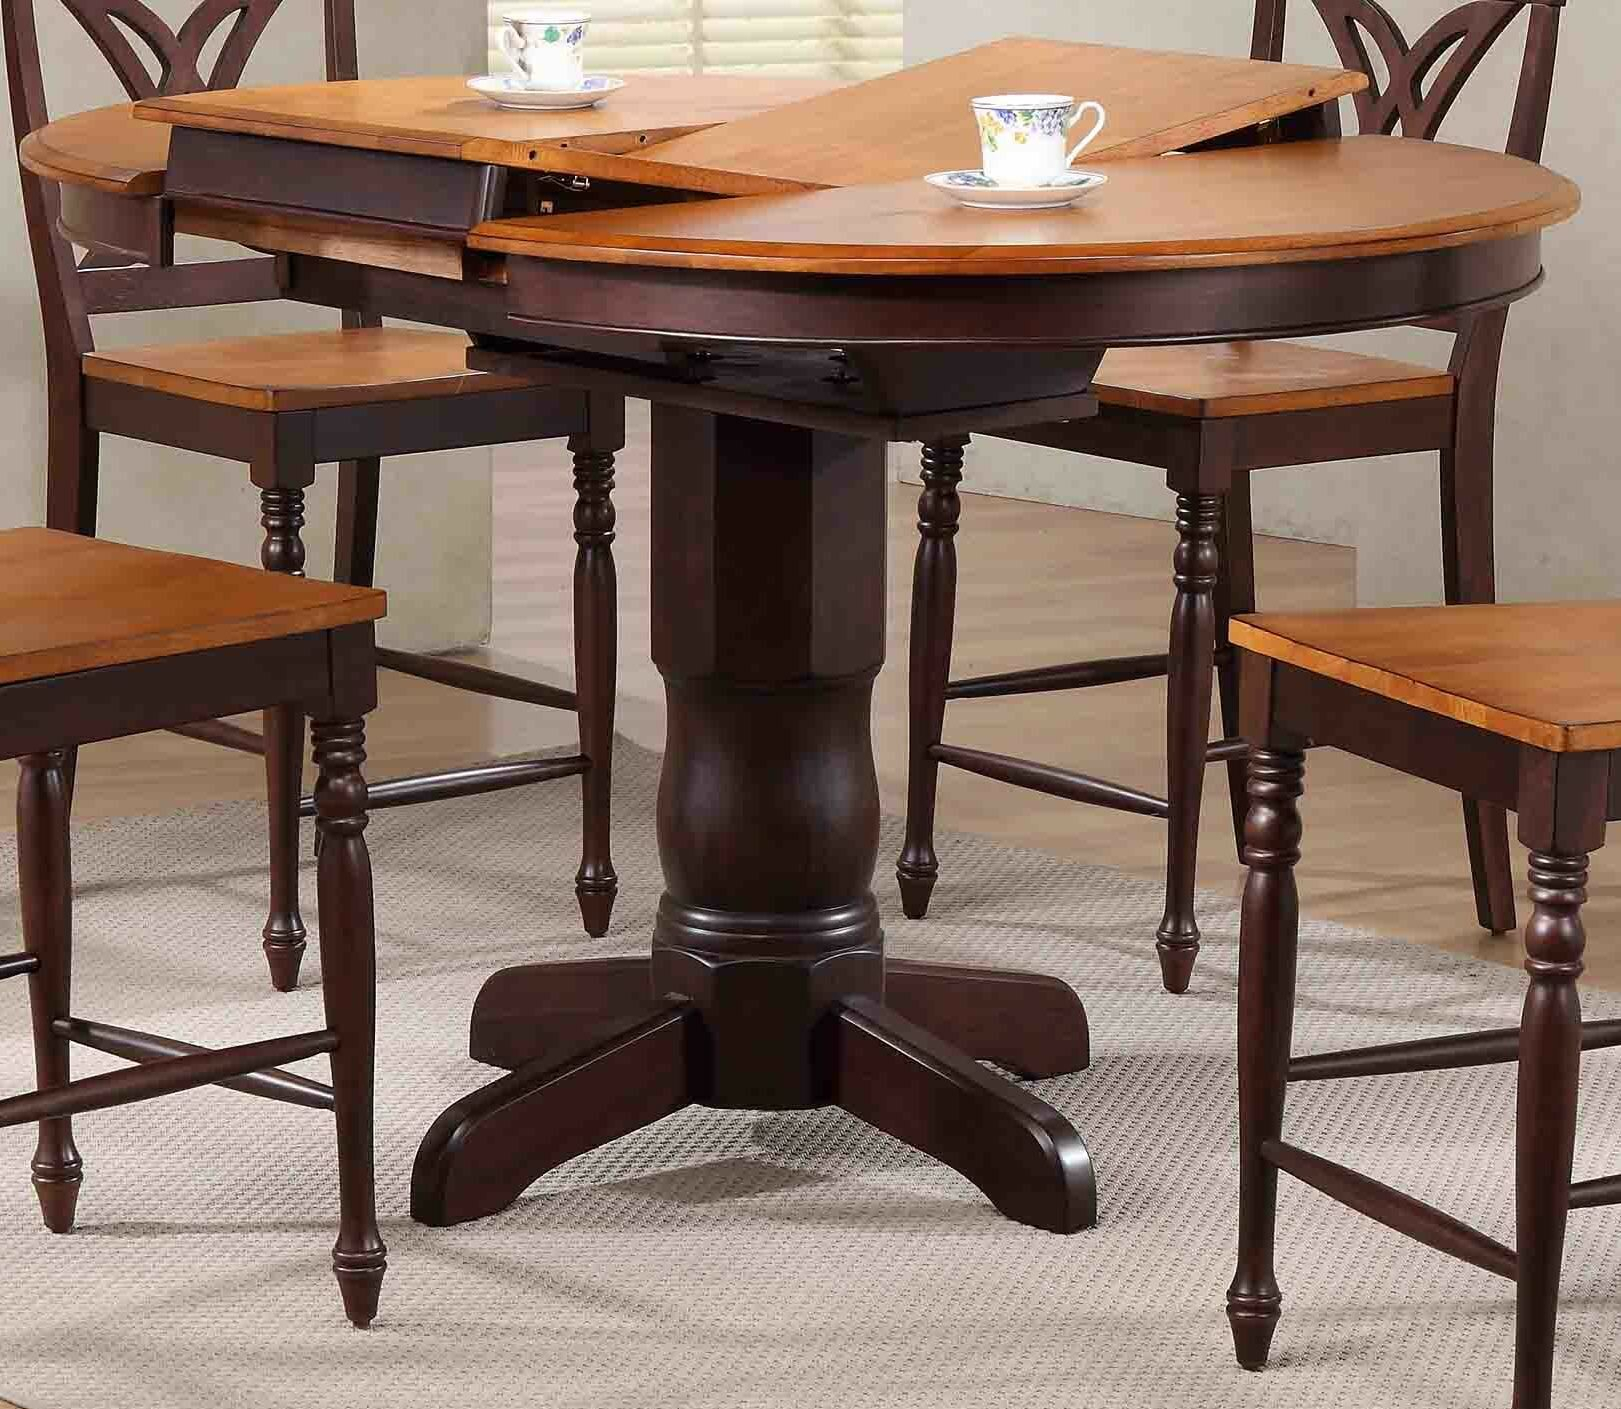 42'' Square Black Laminate Table Top With 33'' X 33'' Bar Intended For Best And Newest Charterville Counter Height Pedestal Dining Tables (View 12 of 15)